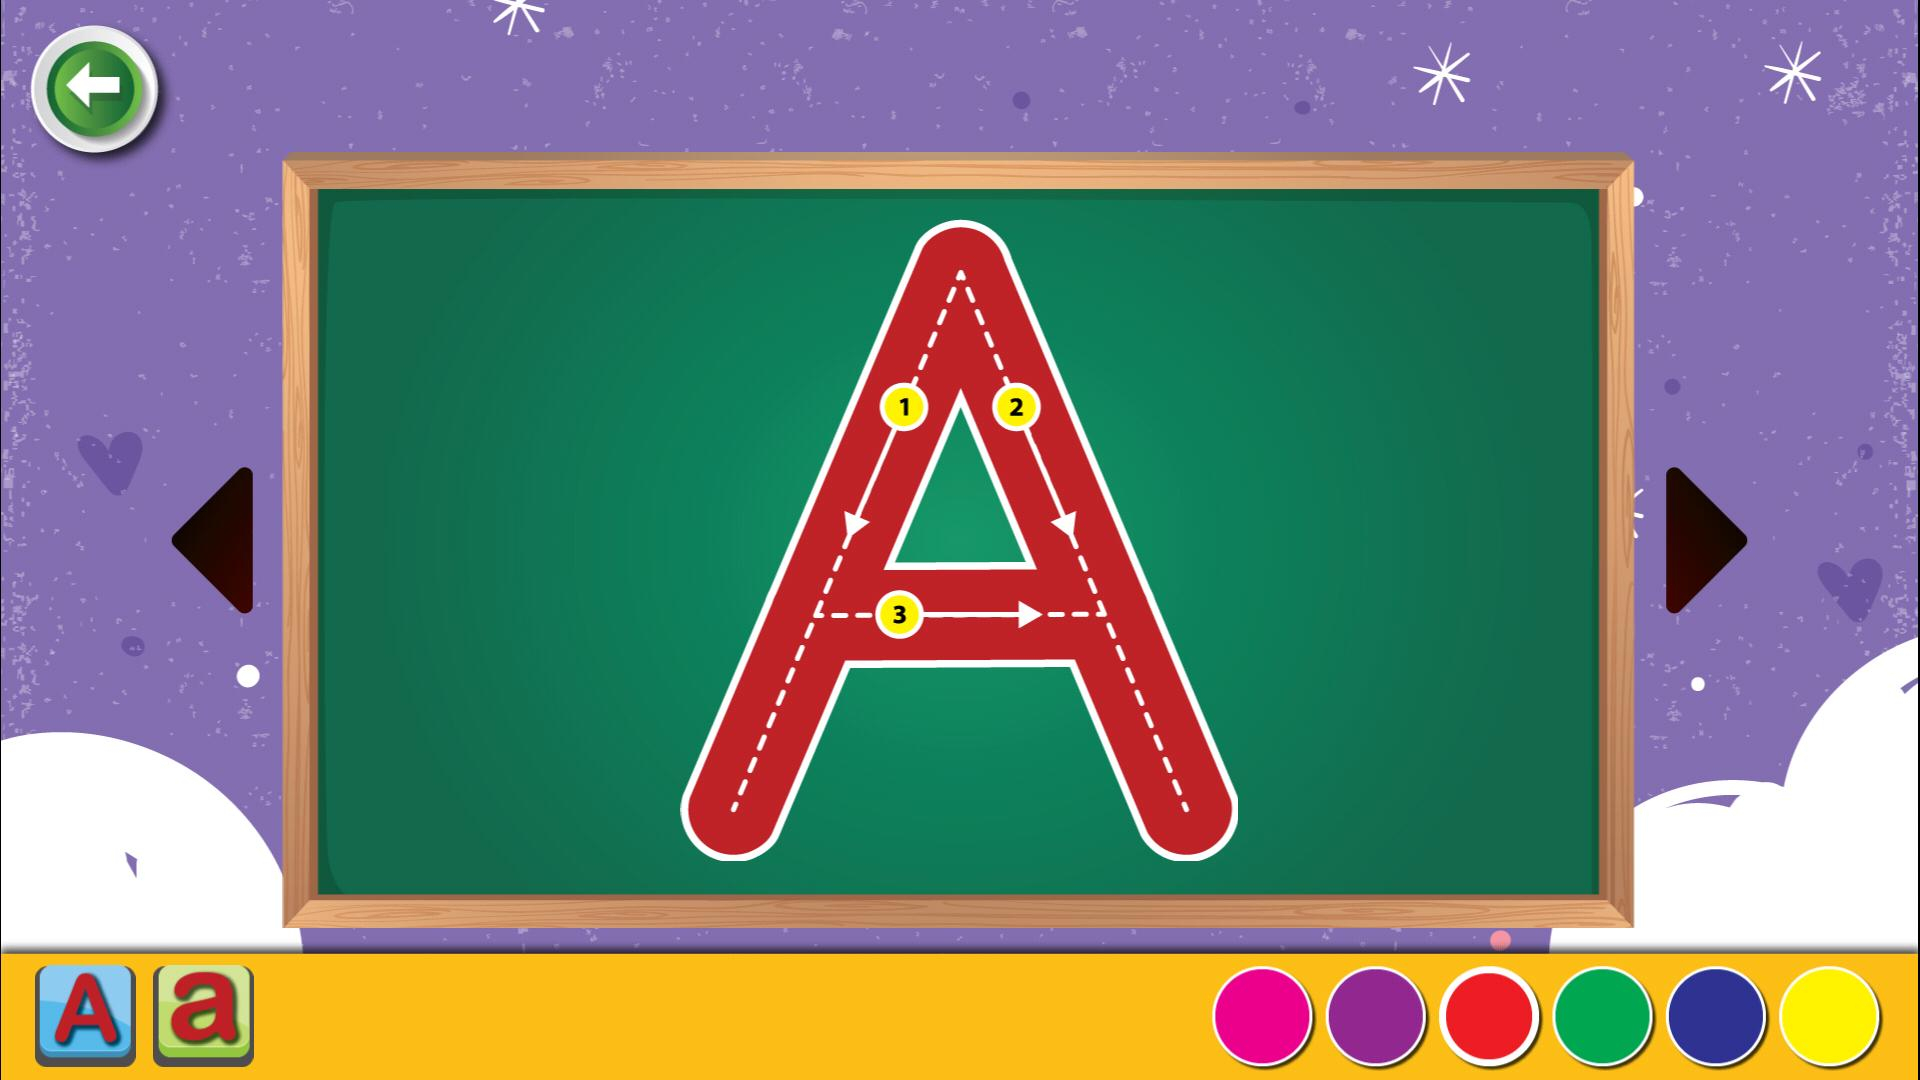 Abc Tracing Games For Kids For Android - Apk Download regarding Abc Tracing Games